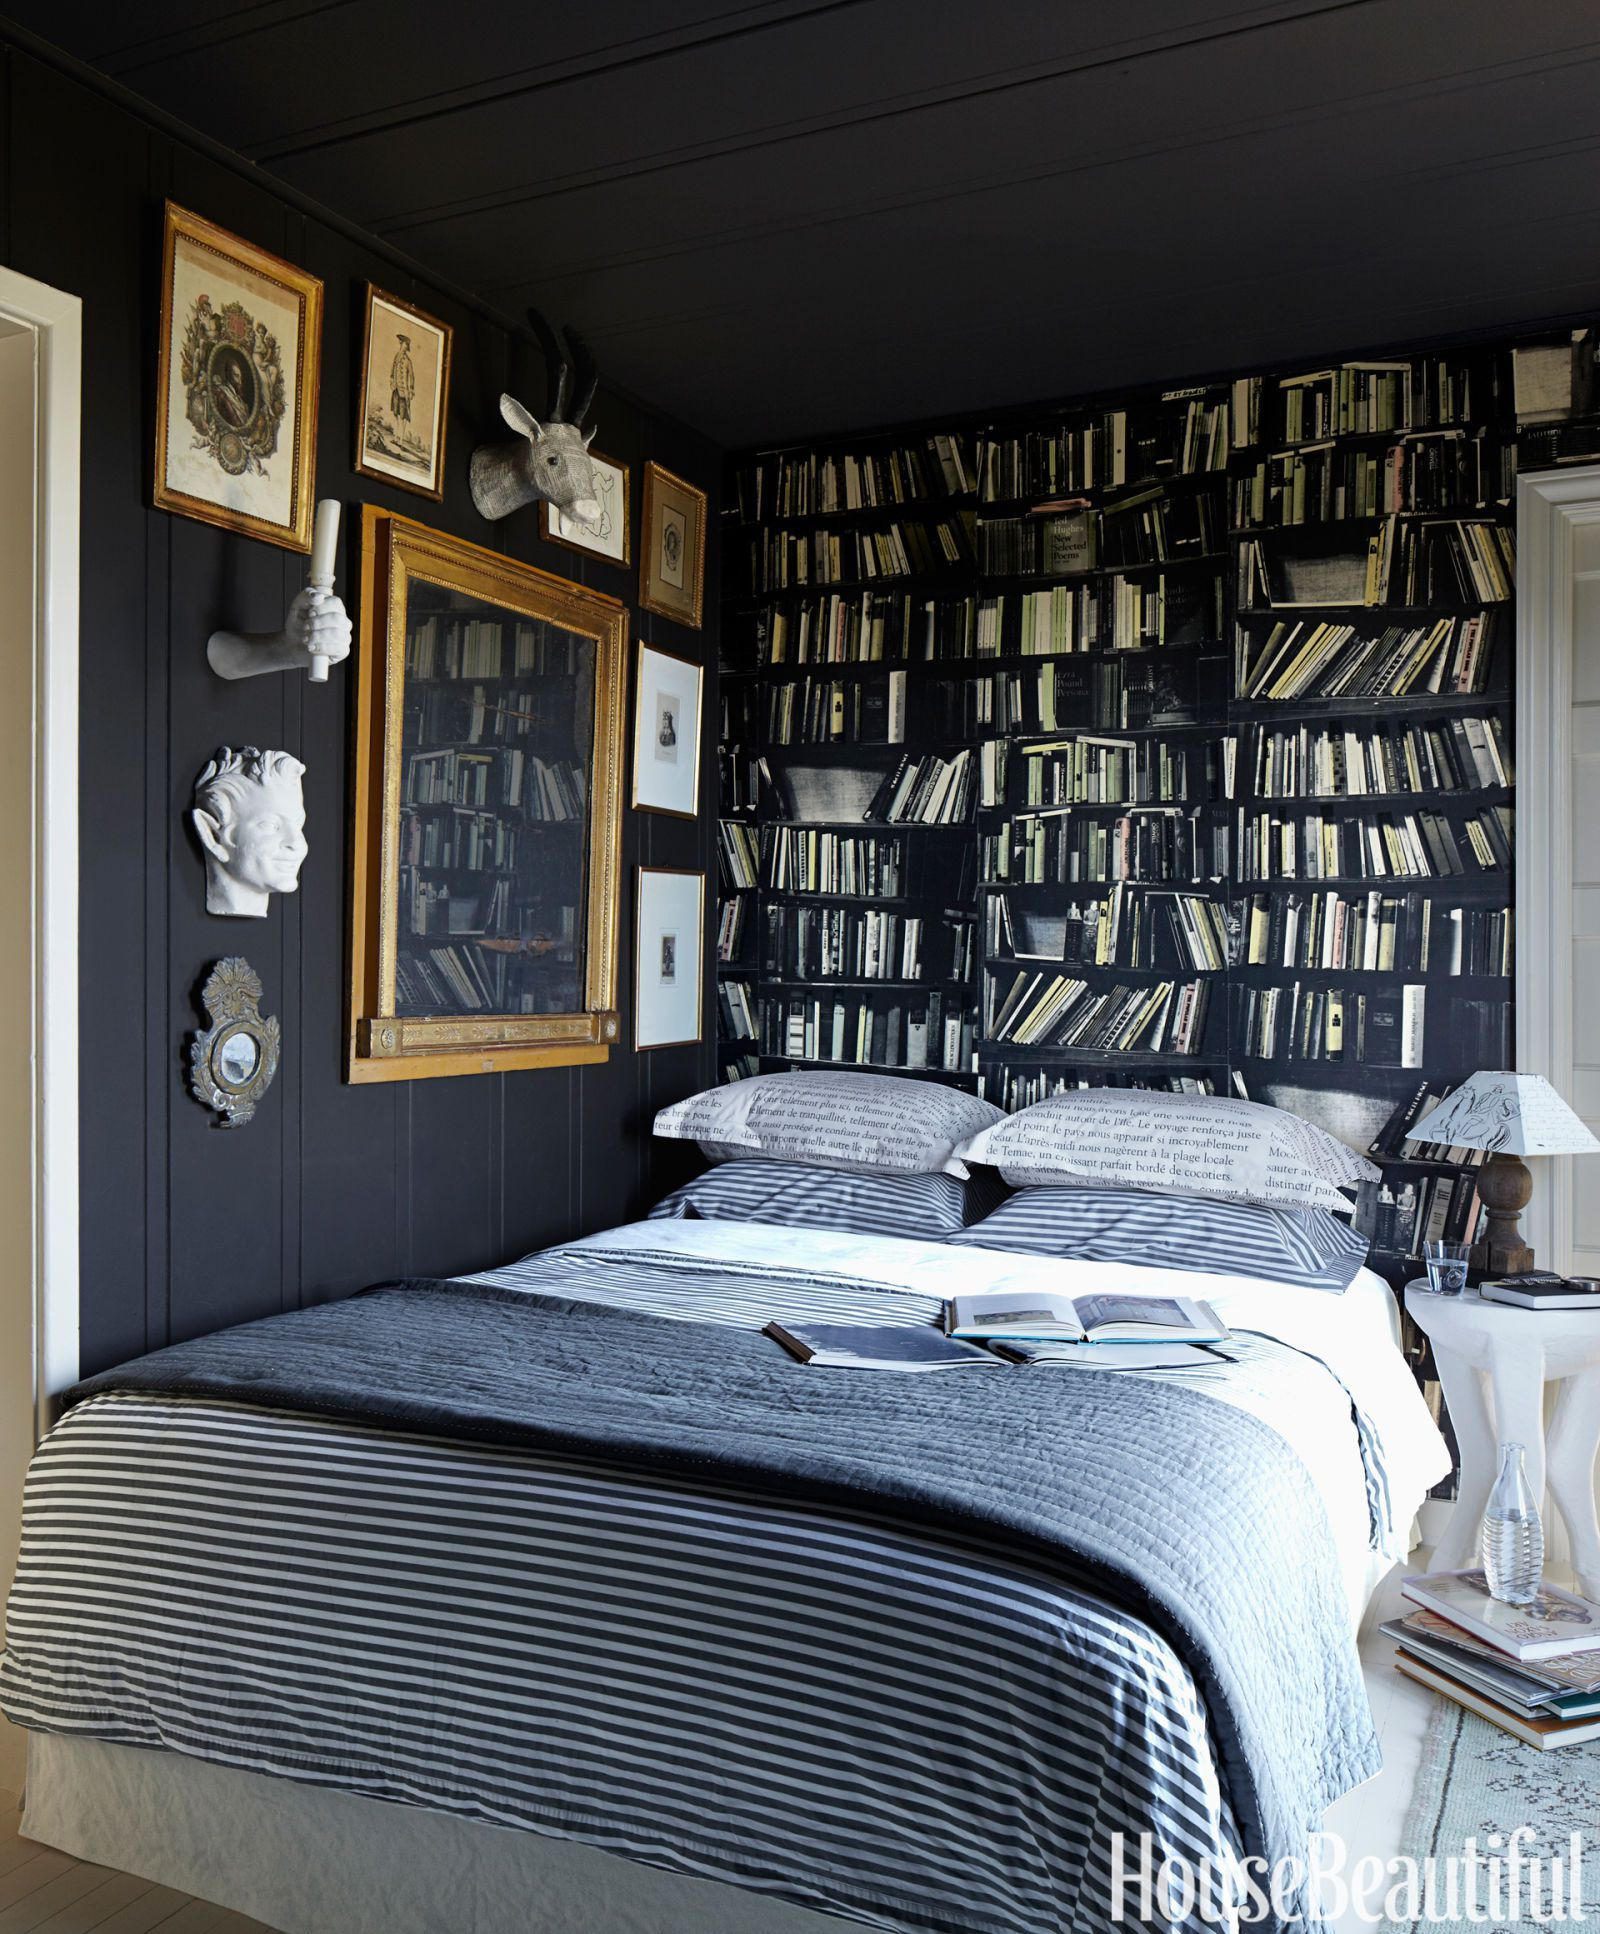 Moody And Eclectic Bedroom Bedding Is On Point The Art Work